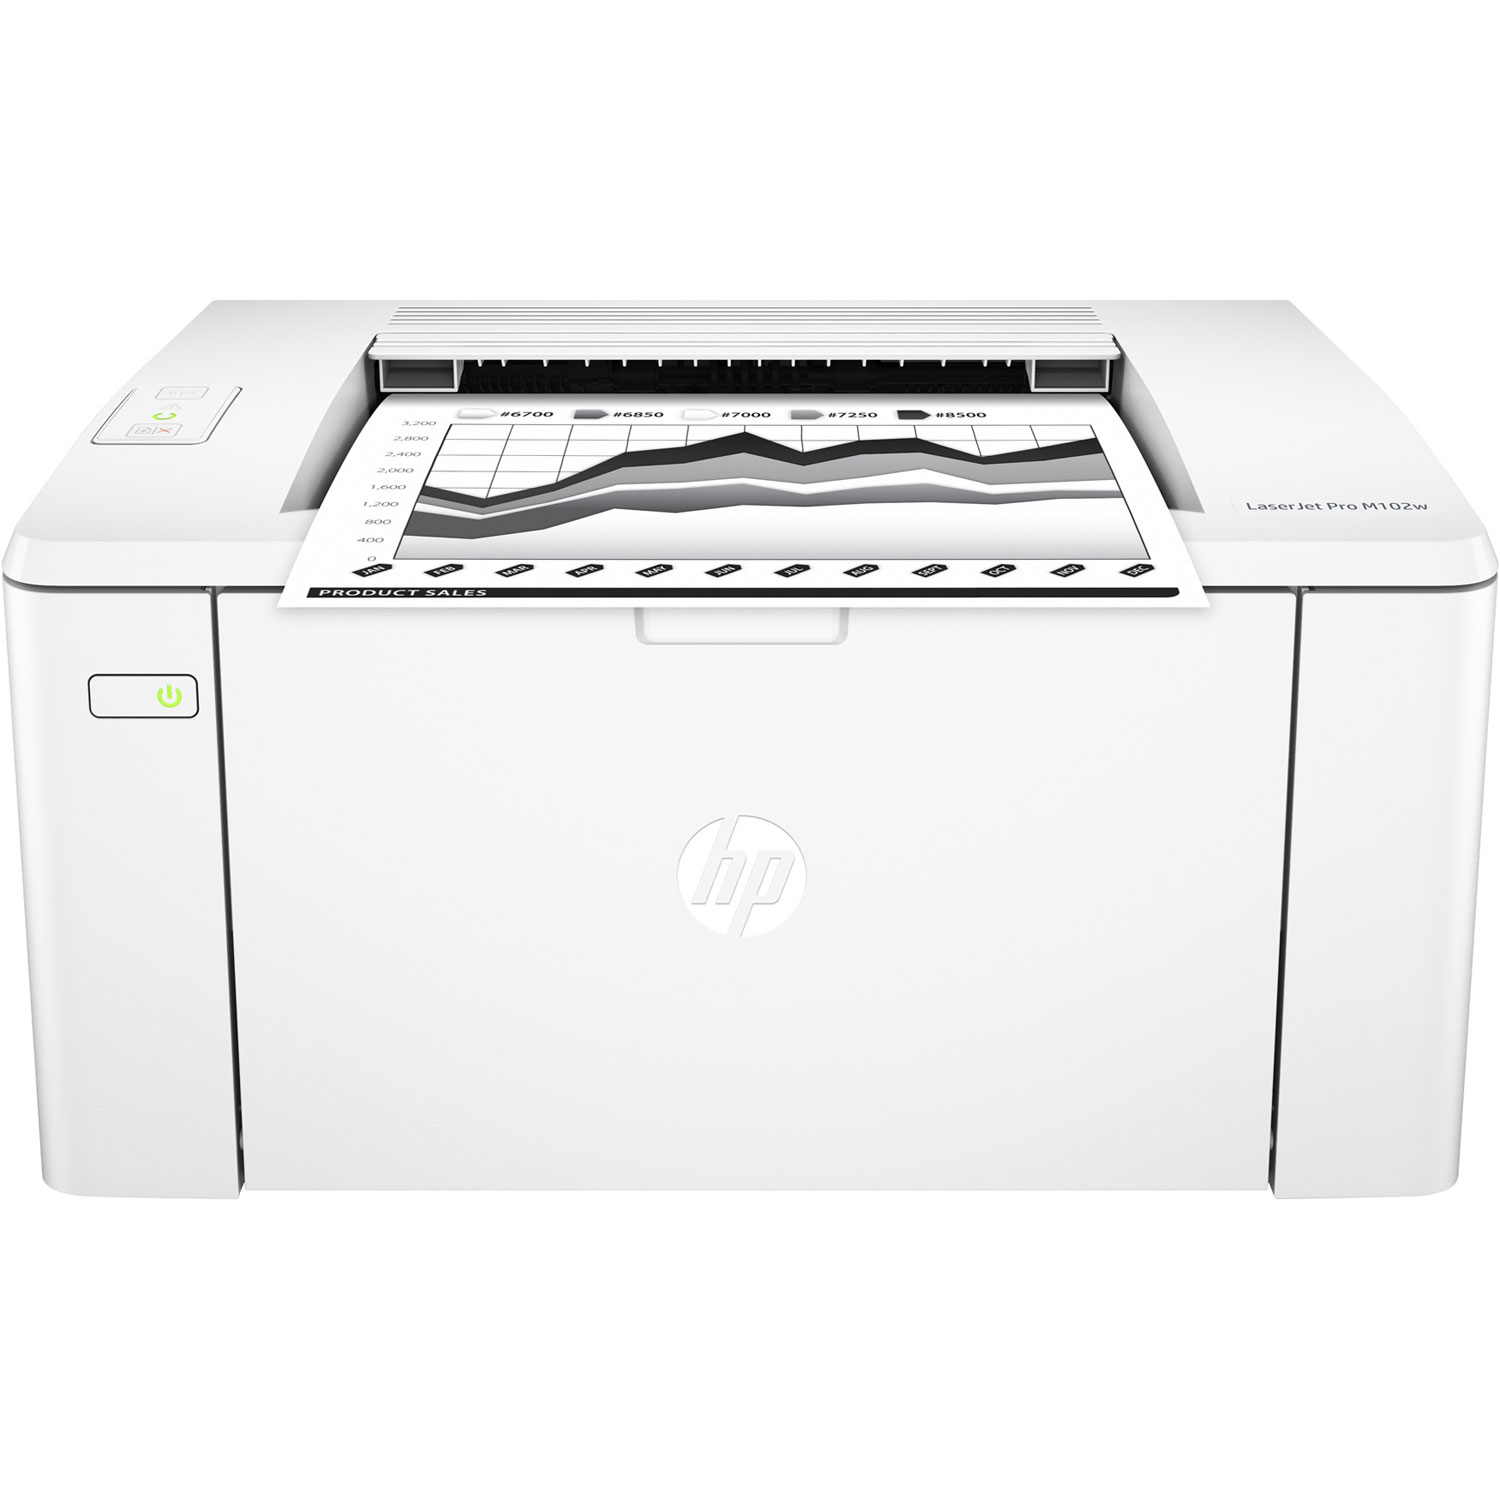 hp laserjet pro m102w imprimante laser hp sur. Black Bedroom Furniture Sets. Home Design Ideas